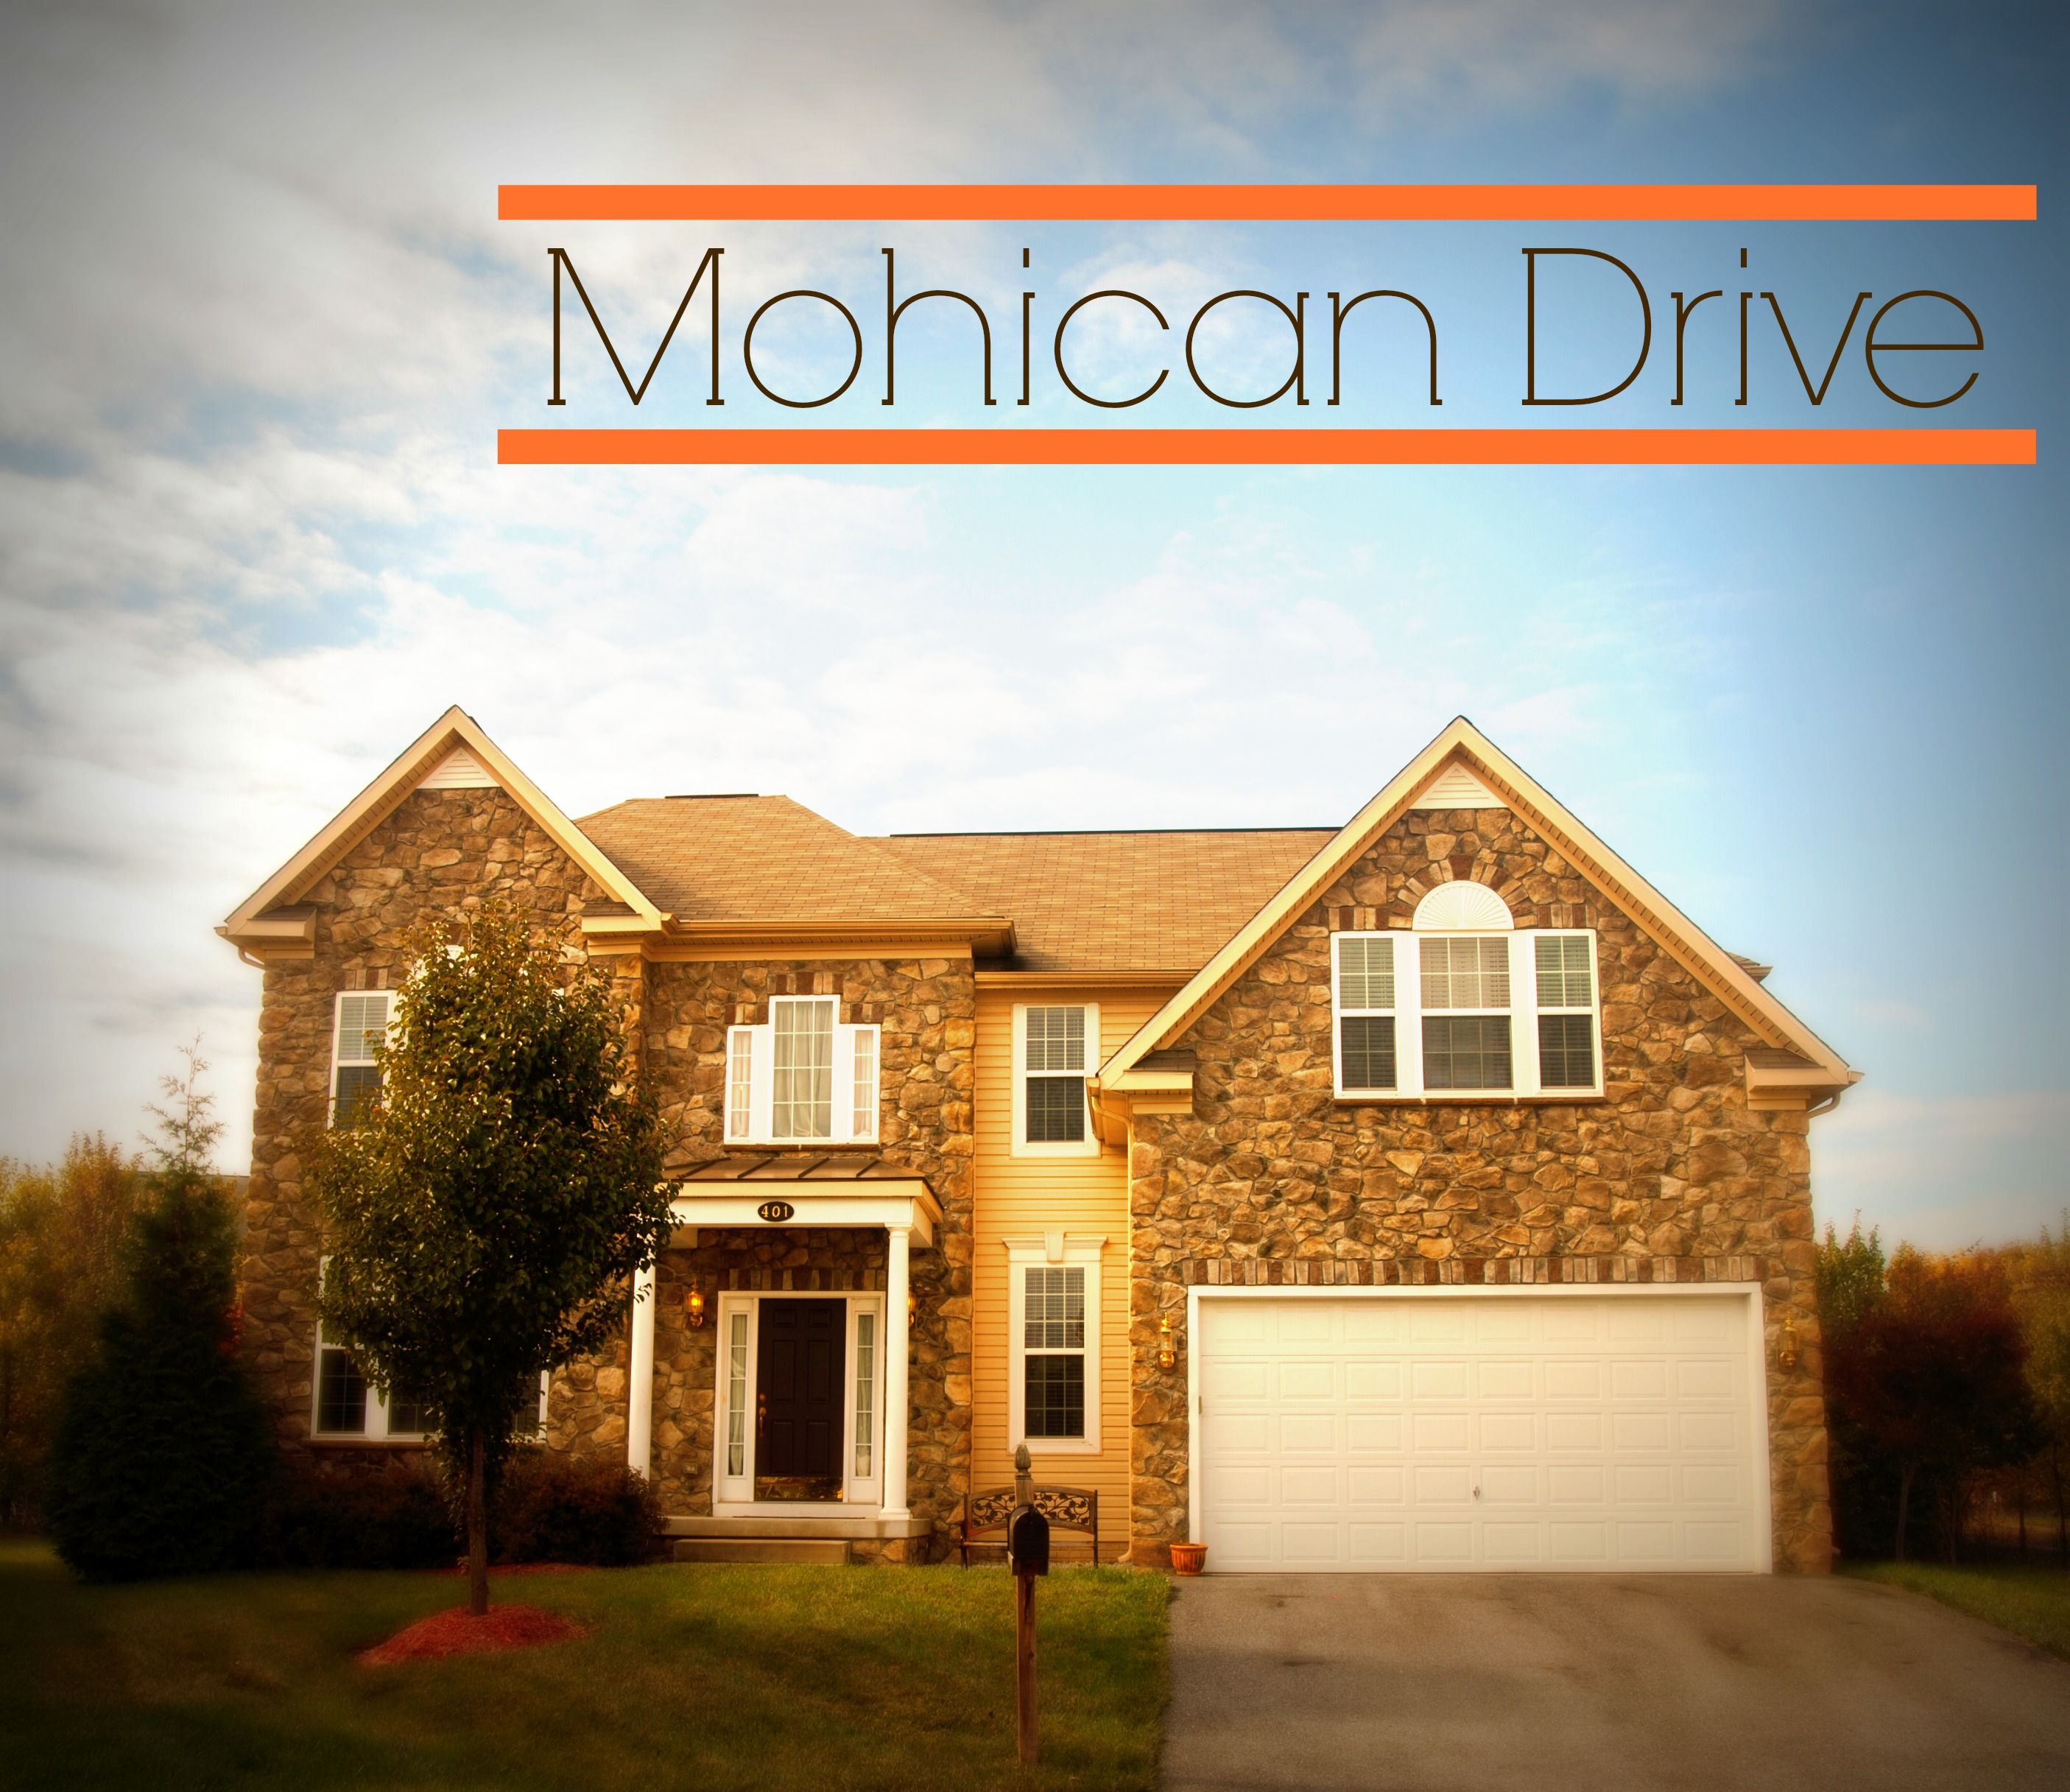 401 mohican drive frederick md 21707 frederick county homes rh pinterest com